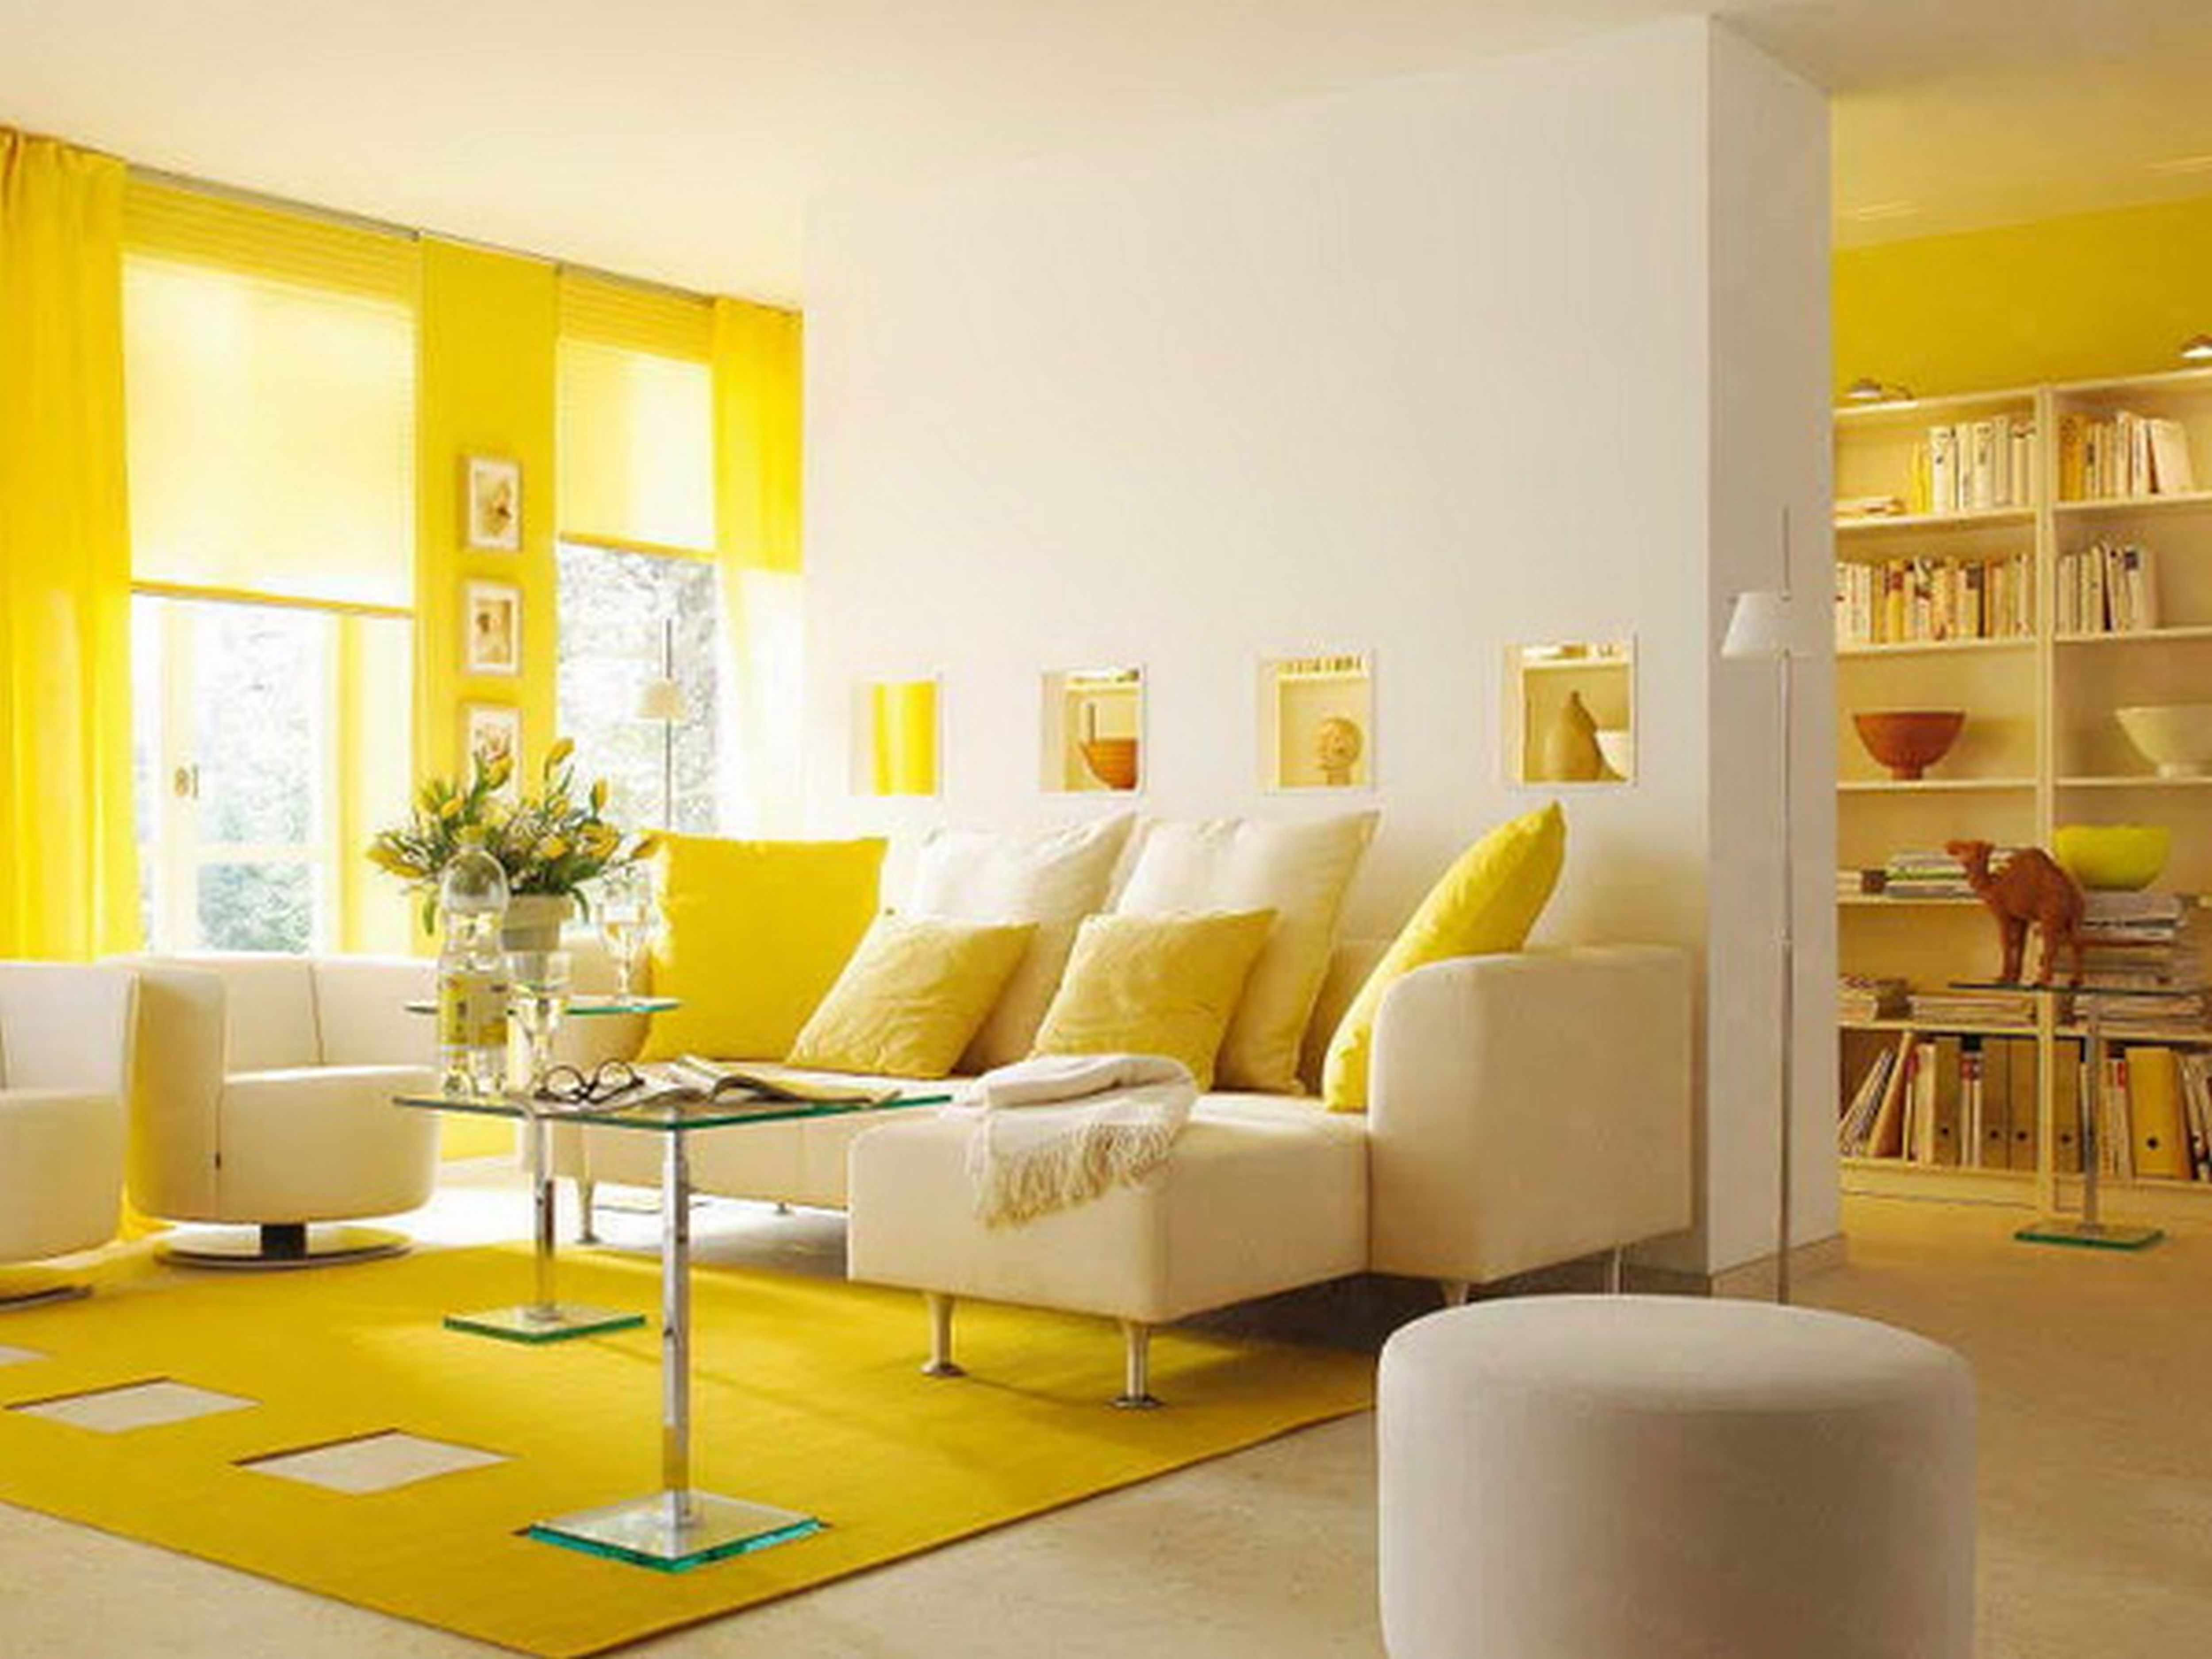 Amazing-Charming-And-Exciting-Simple-Room-Decor-Ideas-With-Cool ...